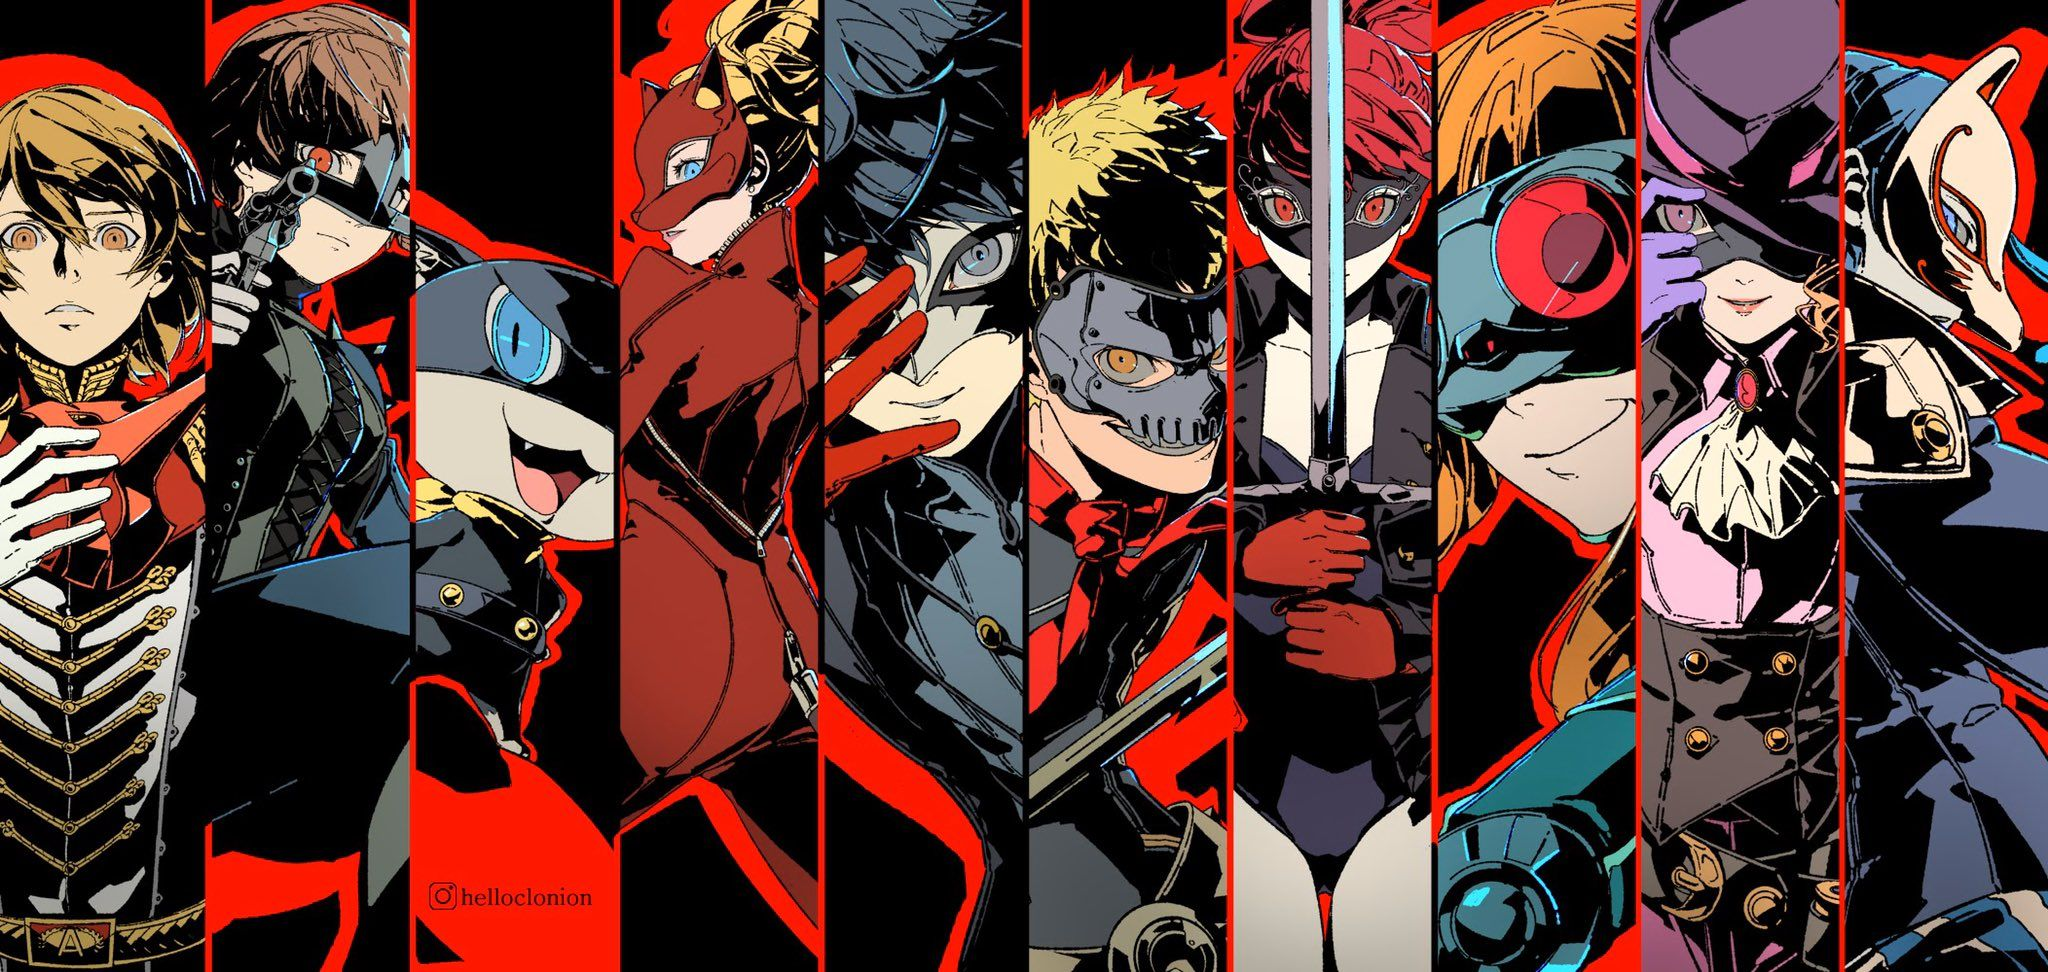 Persona 5 Characters Wallpapers - Top Free Persona 5 ...